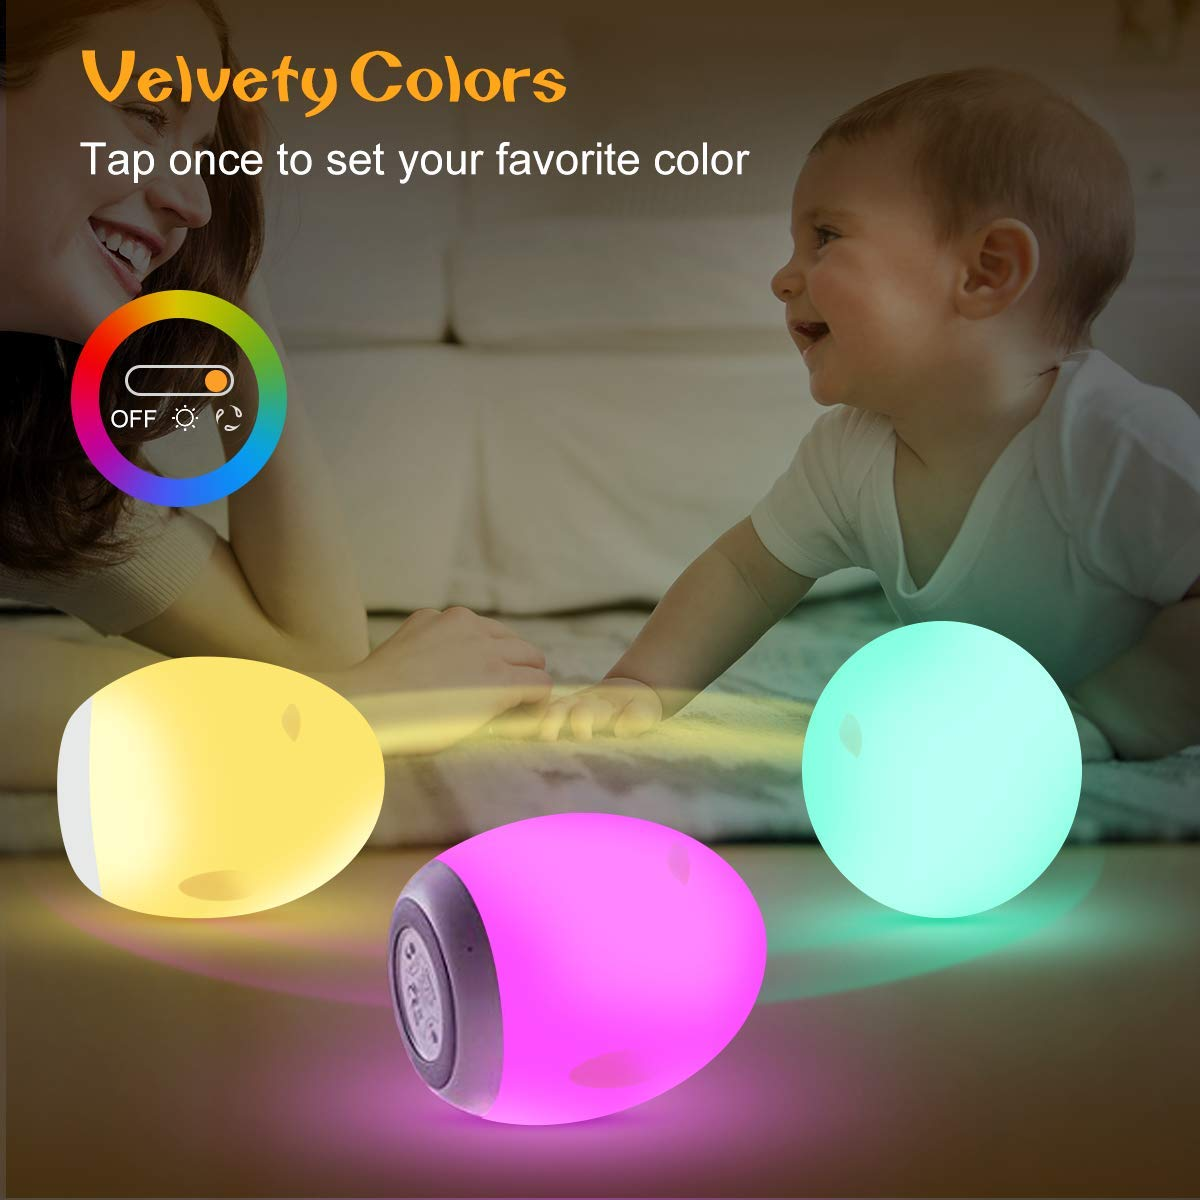 BesDio LED Nursery Lamp : Color Changing Mode /& Dimming Function with Touch Sensor up to 100H Runtime Night Lights for Kids USB Rechargeable 1 Hour Timer